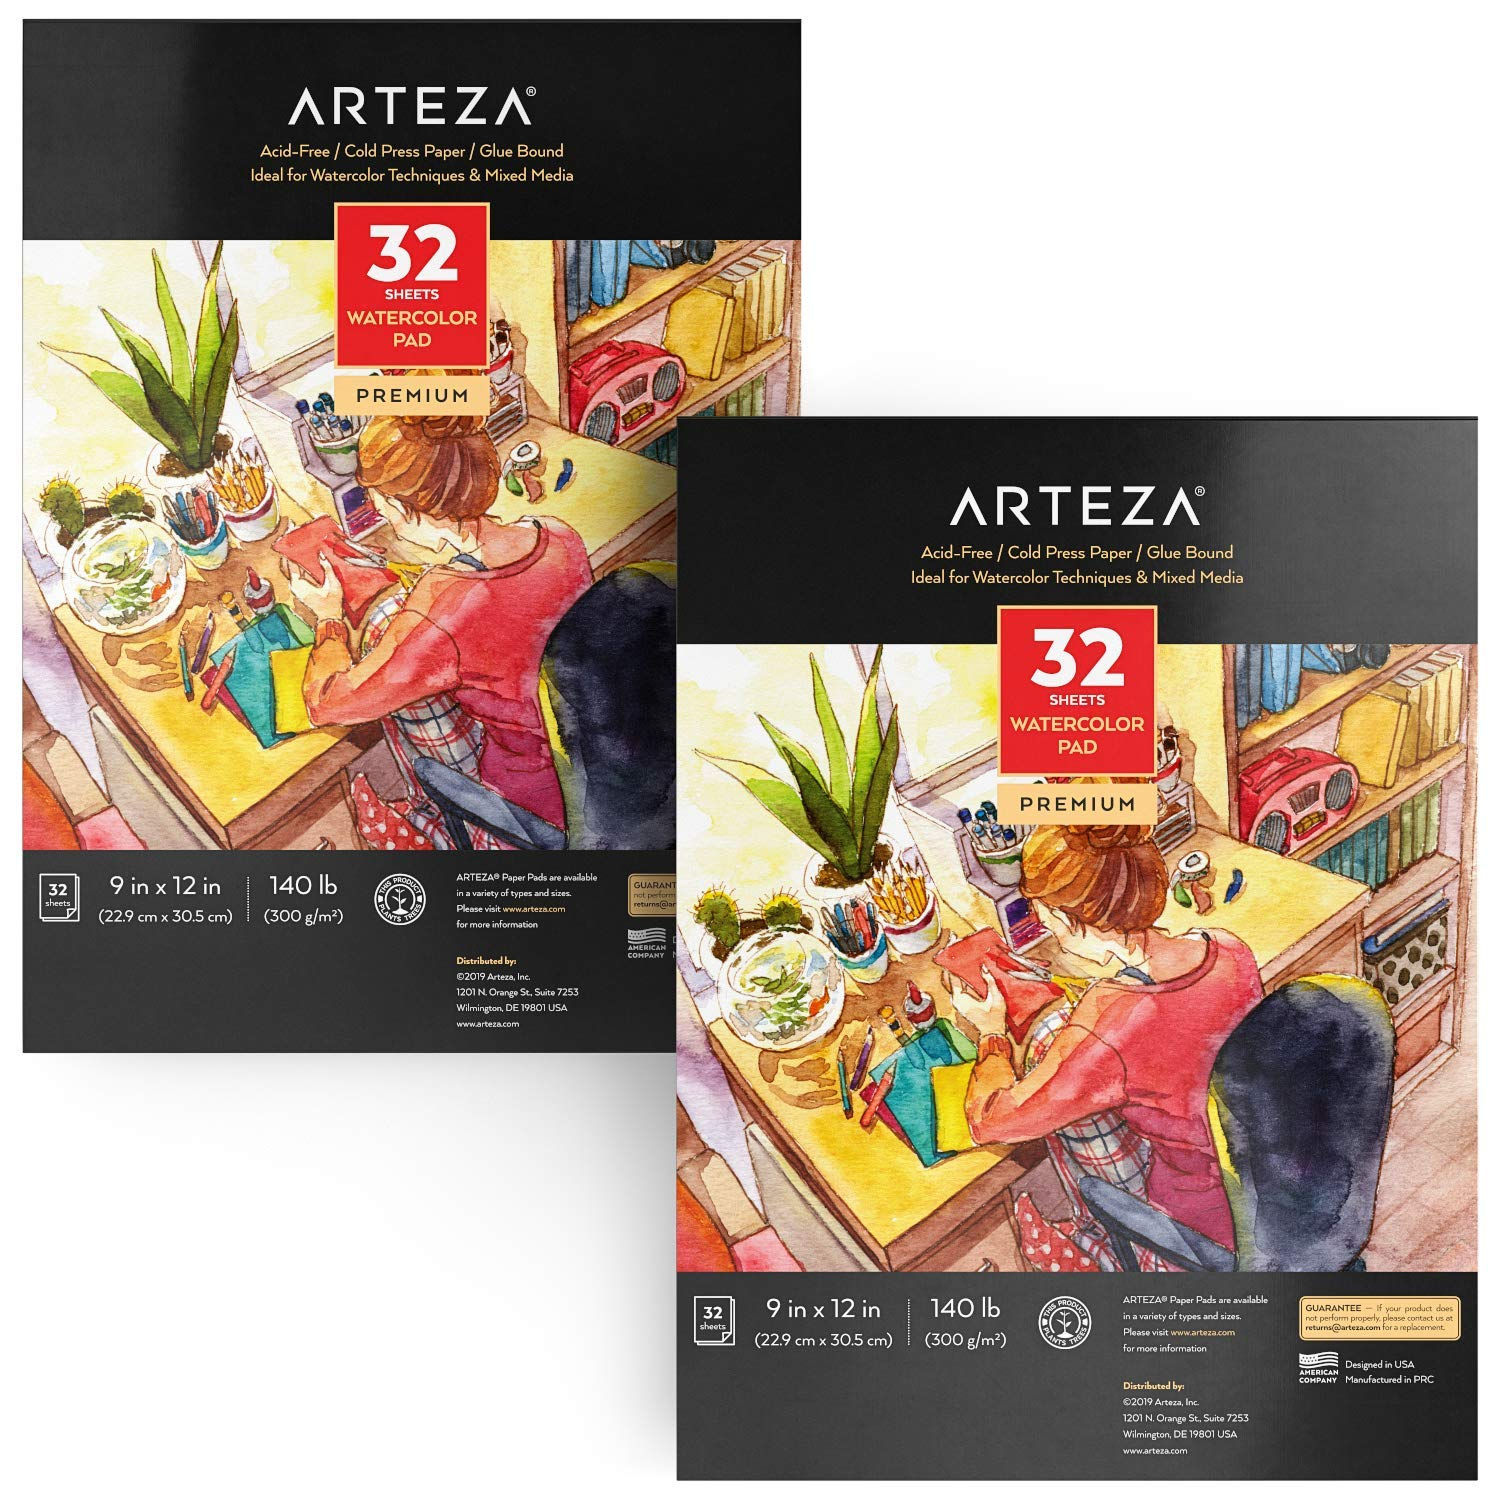 ARTEZA Watercolor Paper